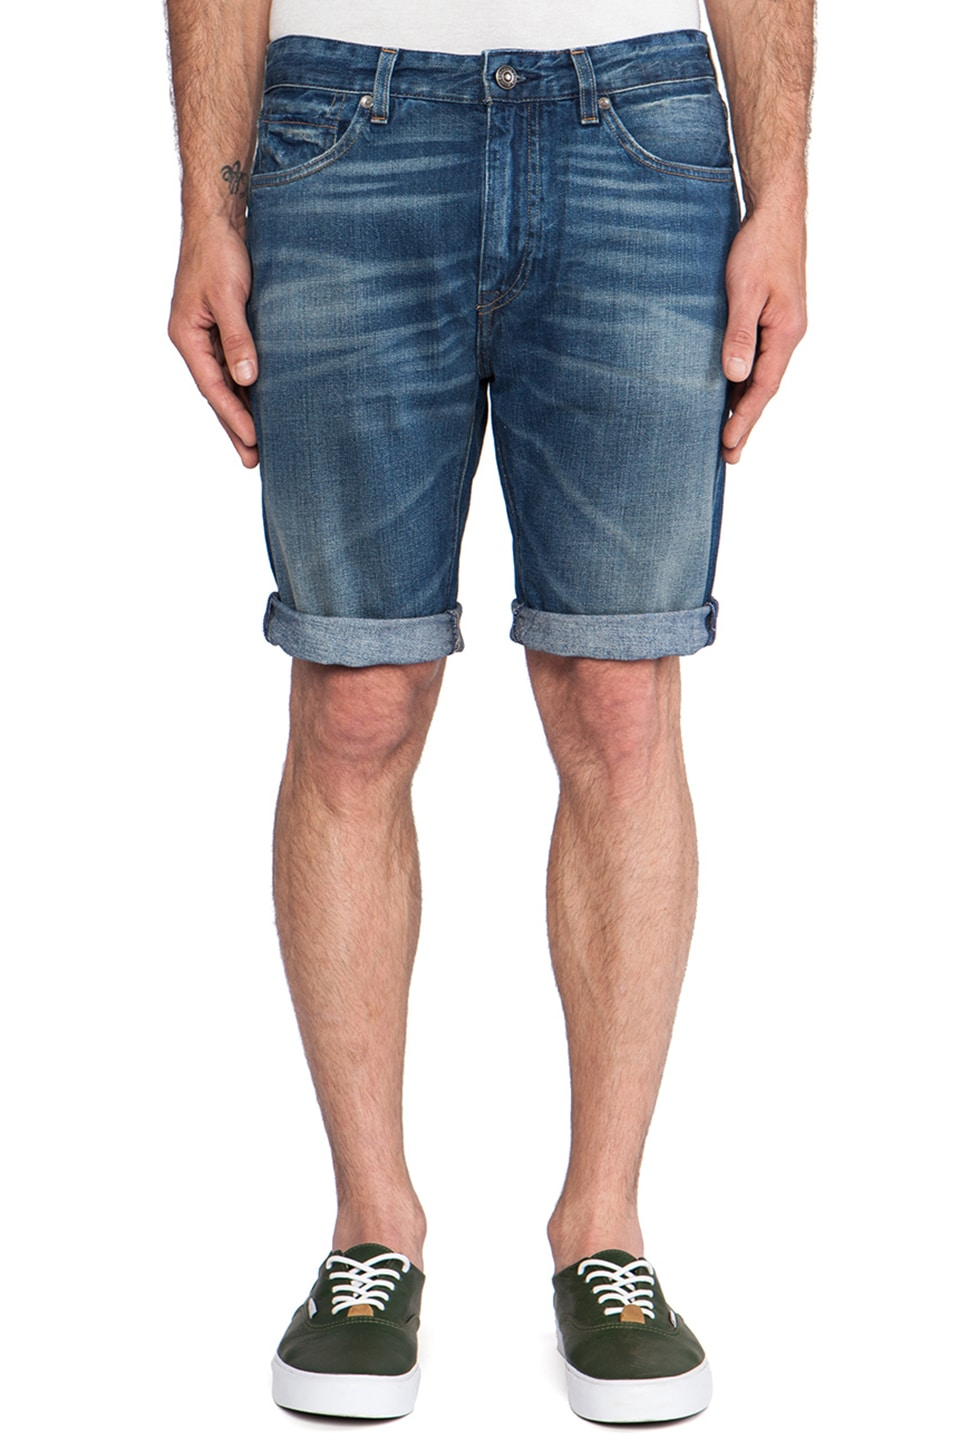 LEVI'S: Made & Crafted Shuttle Shorts in Surfdog